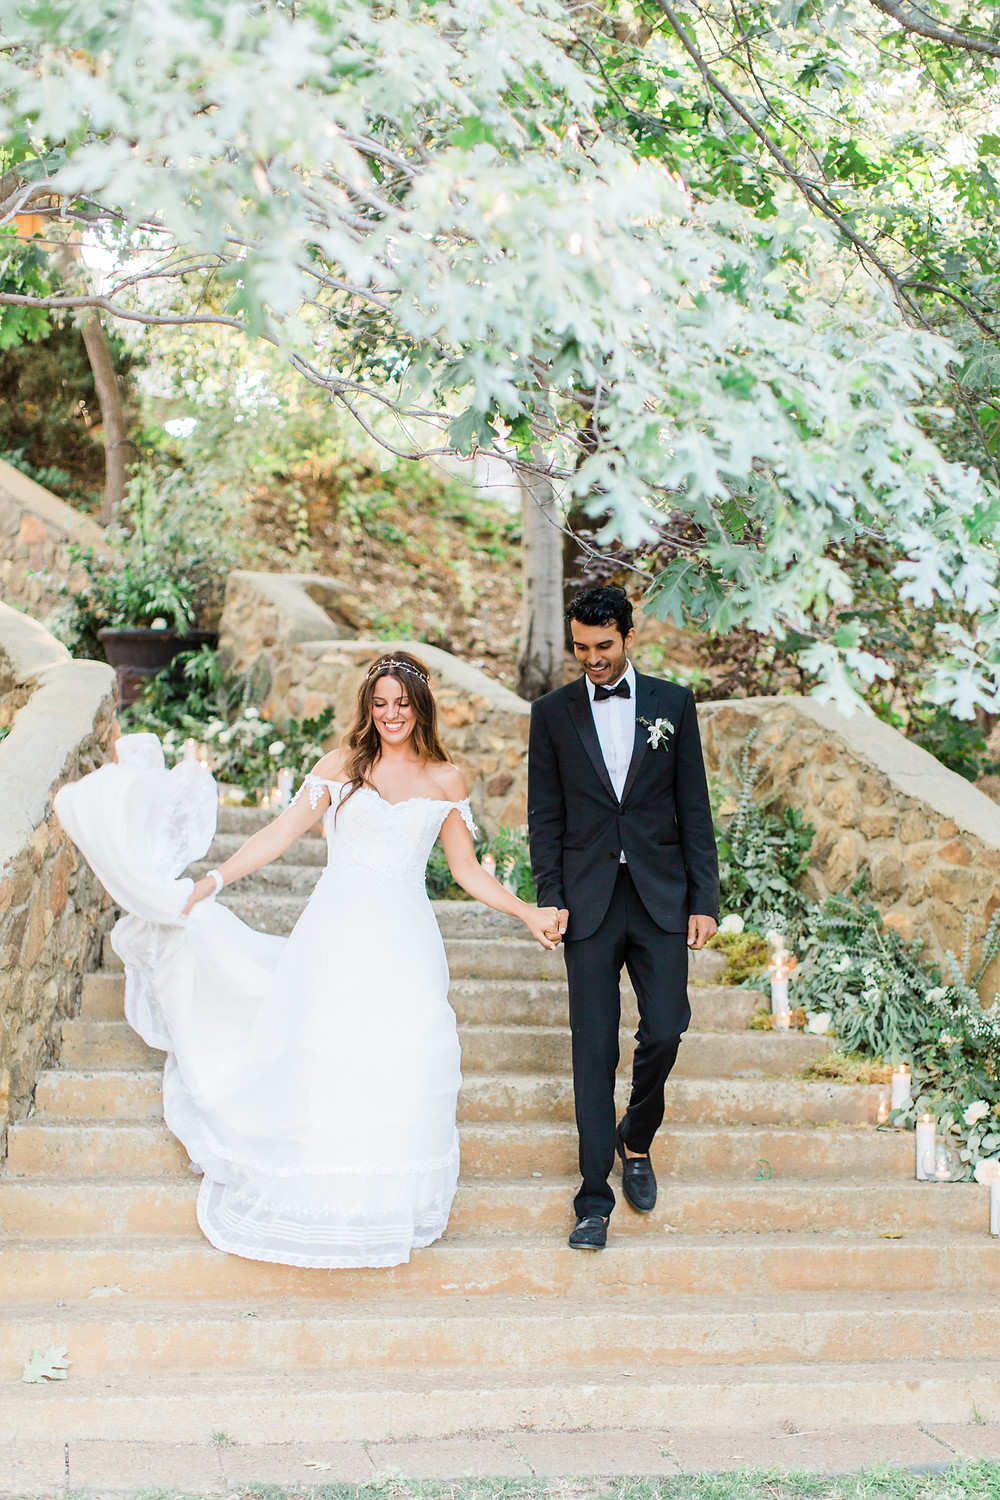 Bride and Groom enter down stone staircase lined with greenery and candles.